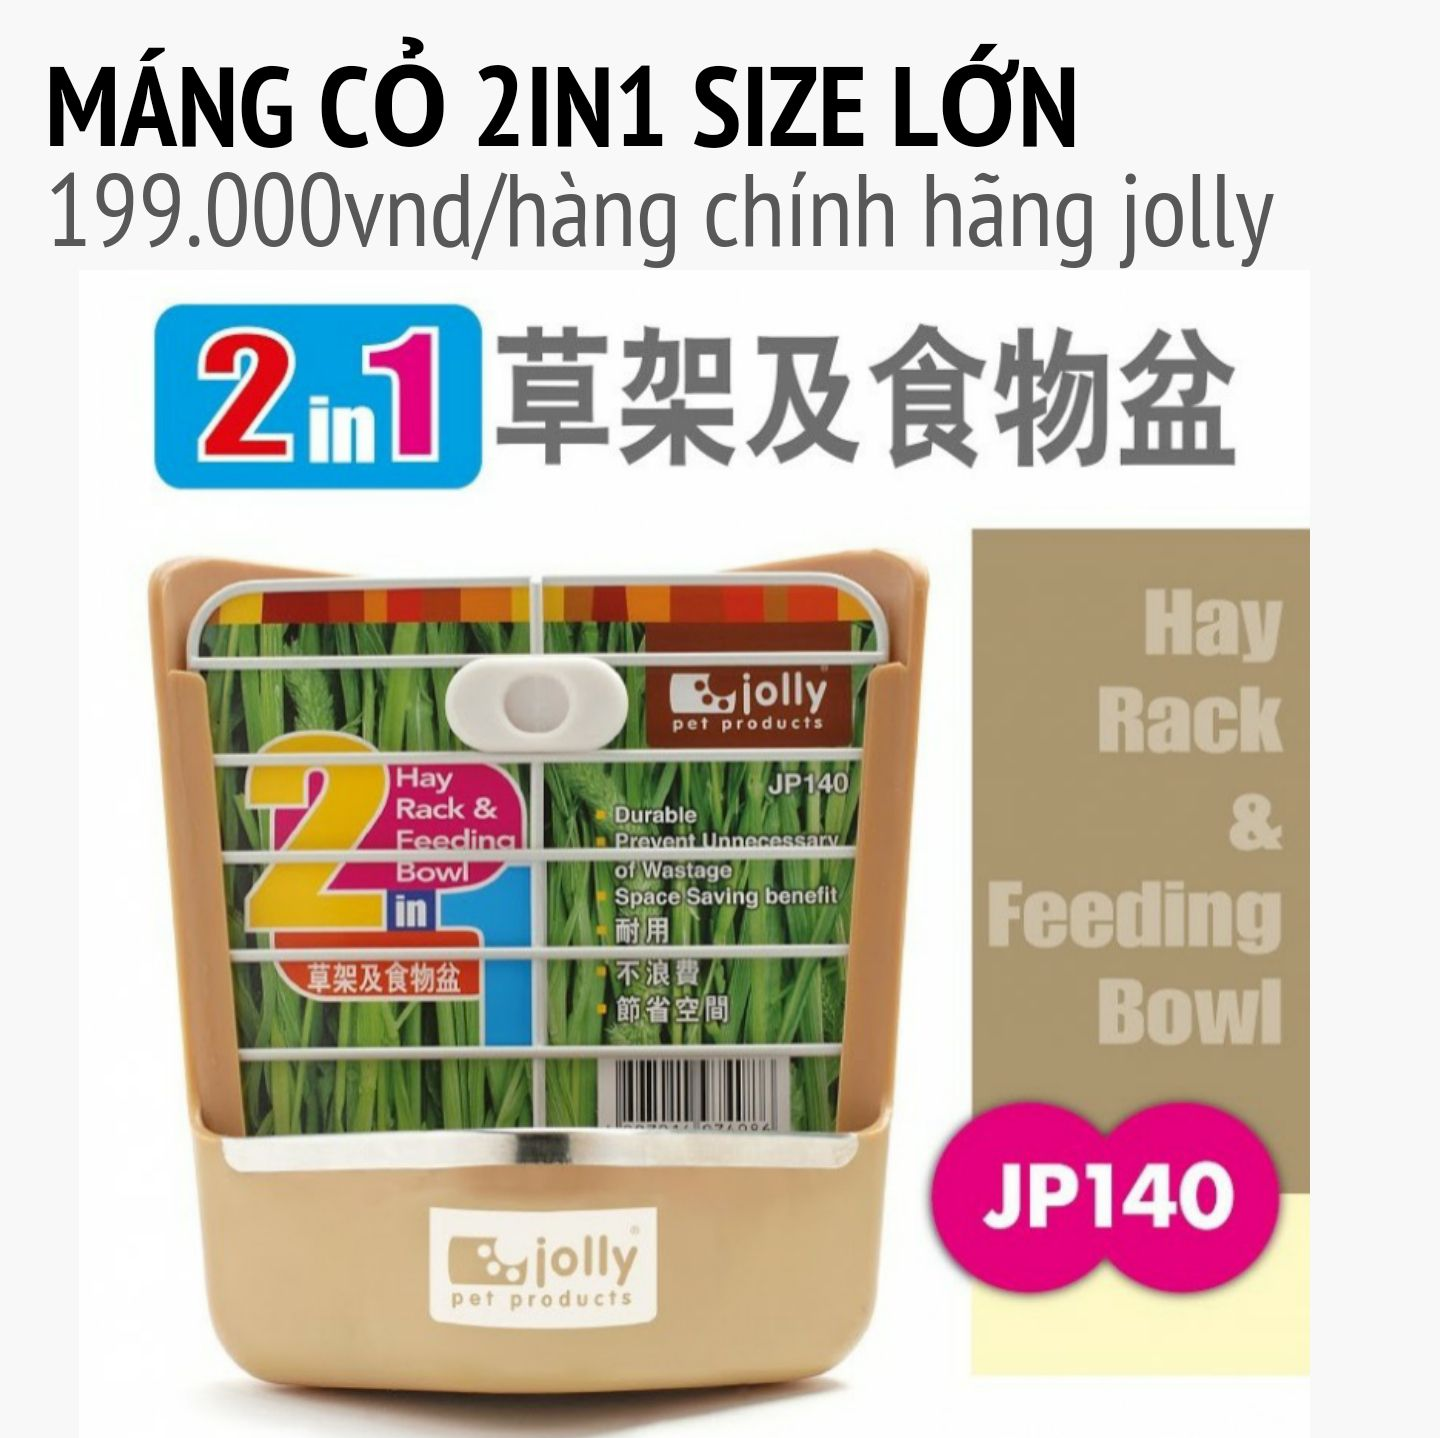 Máng cỏ 2in1 jolly Size lớn